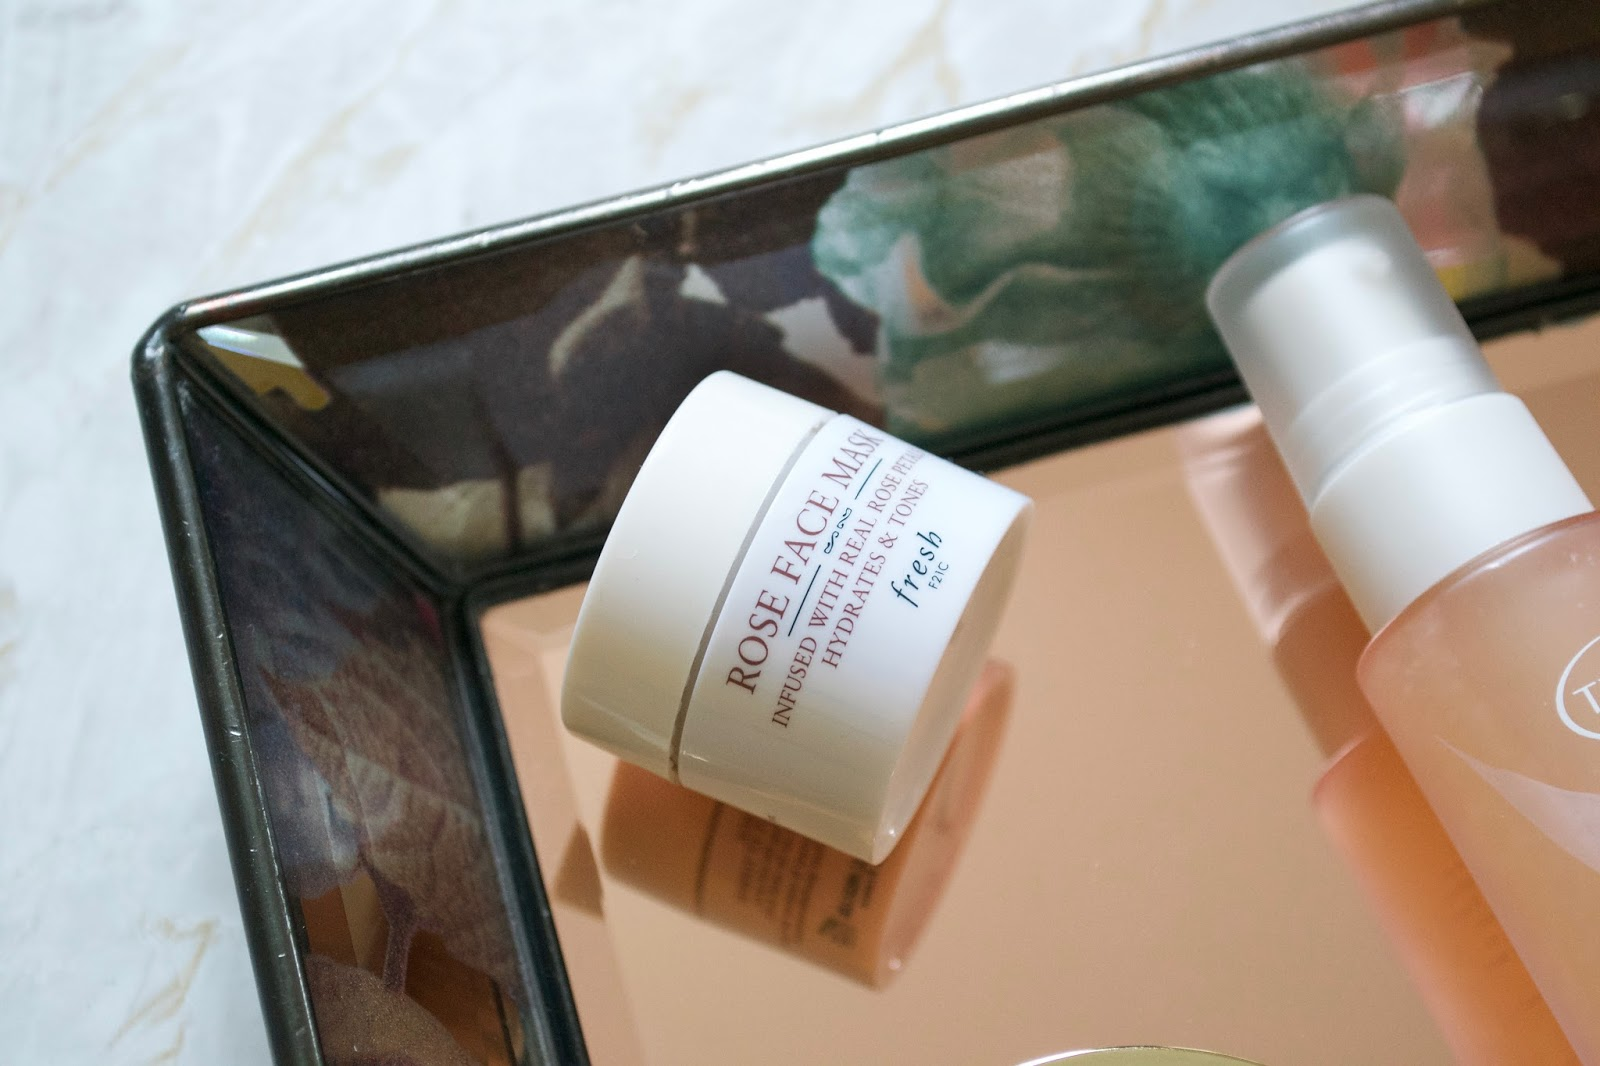 Fresh Rose Face Mask Review - Aspiring Londoner